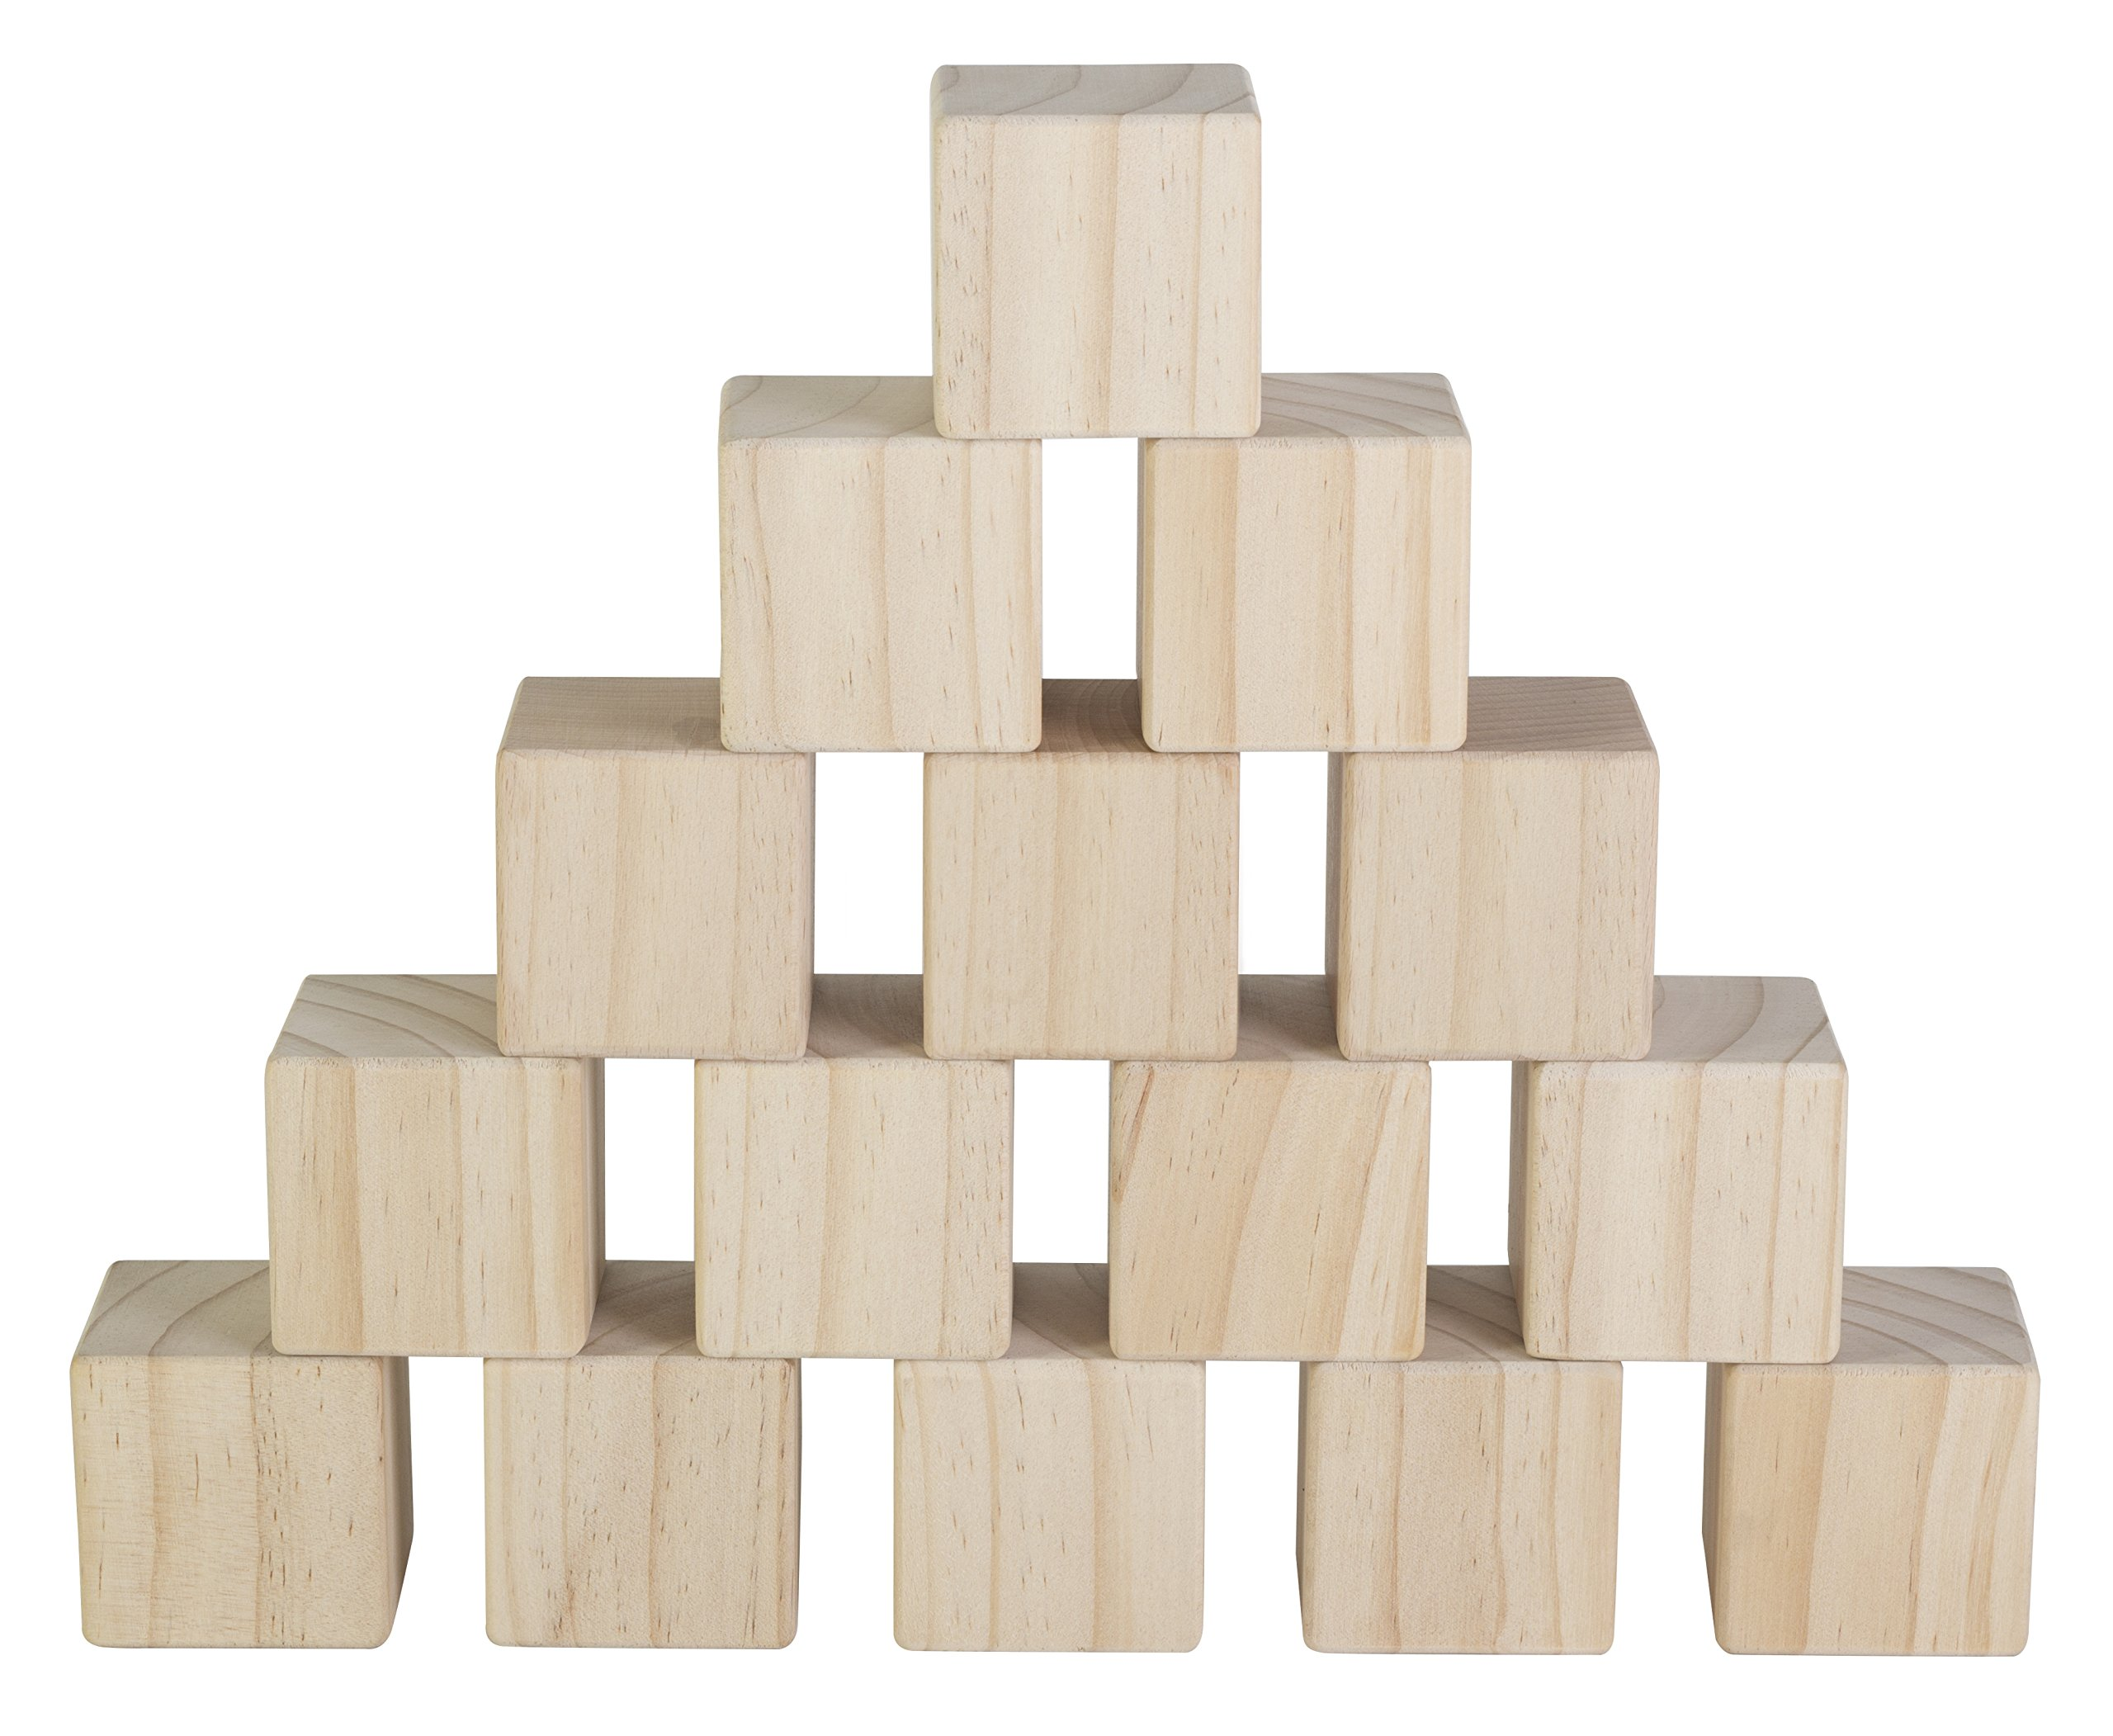 Set of 15 Large Wooden Blocks - 2 Inch Natural Wood Square Cubes - with Sanded Smooth Surface for Photo Blocks, Crafts, Art Supplies, Puzzle Projects and More - Great Toys for Kids & Child by My Toy House